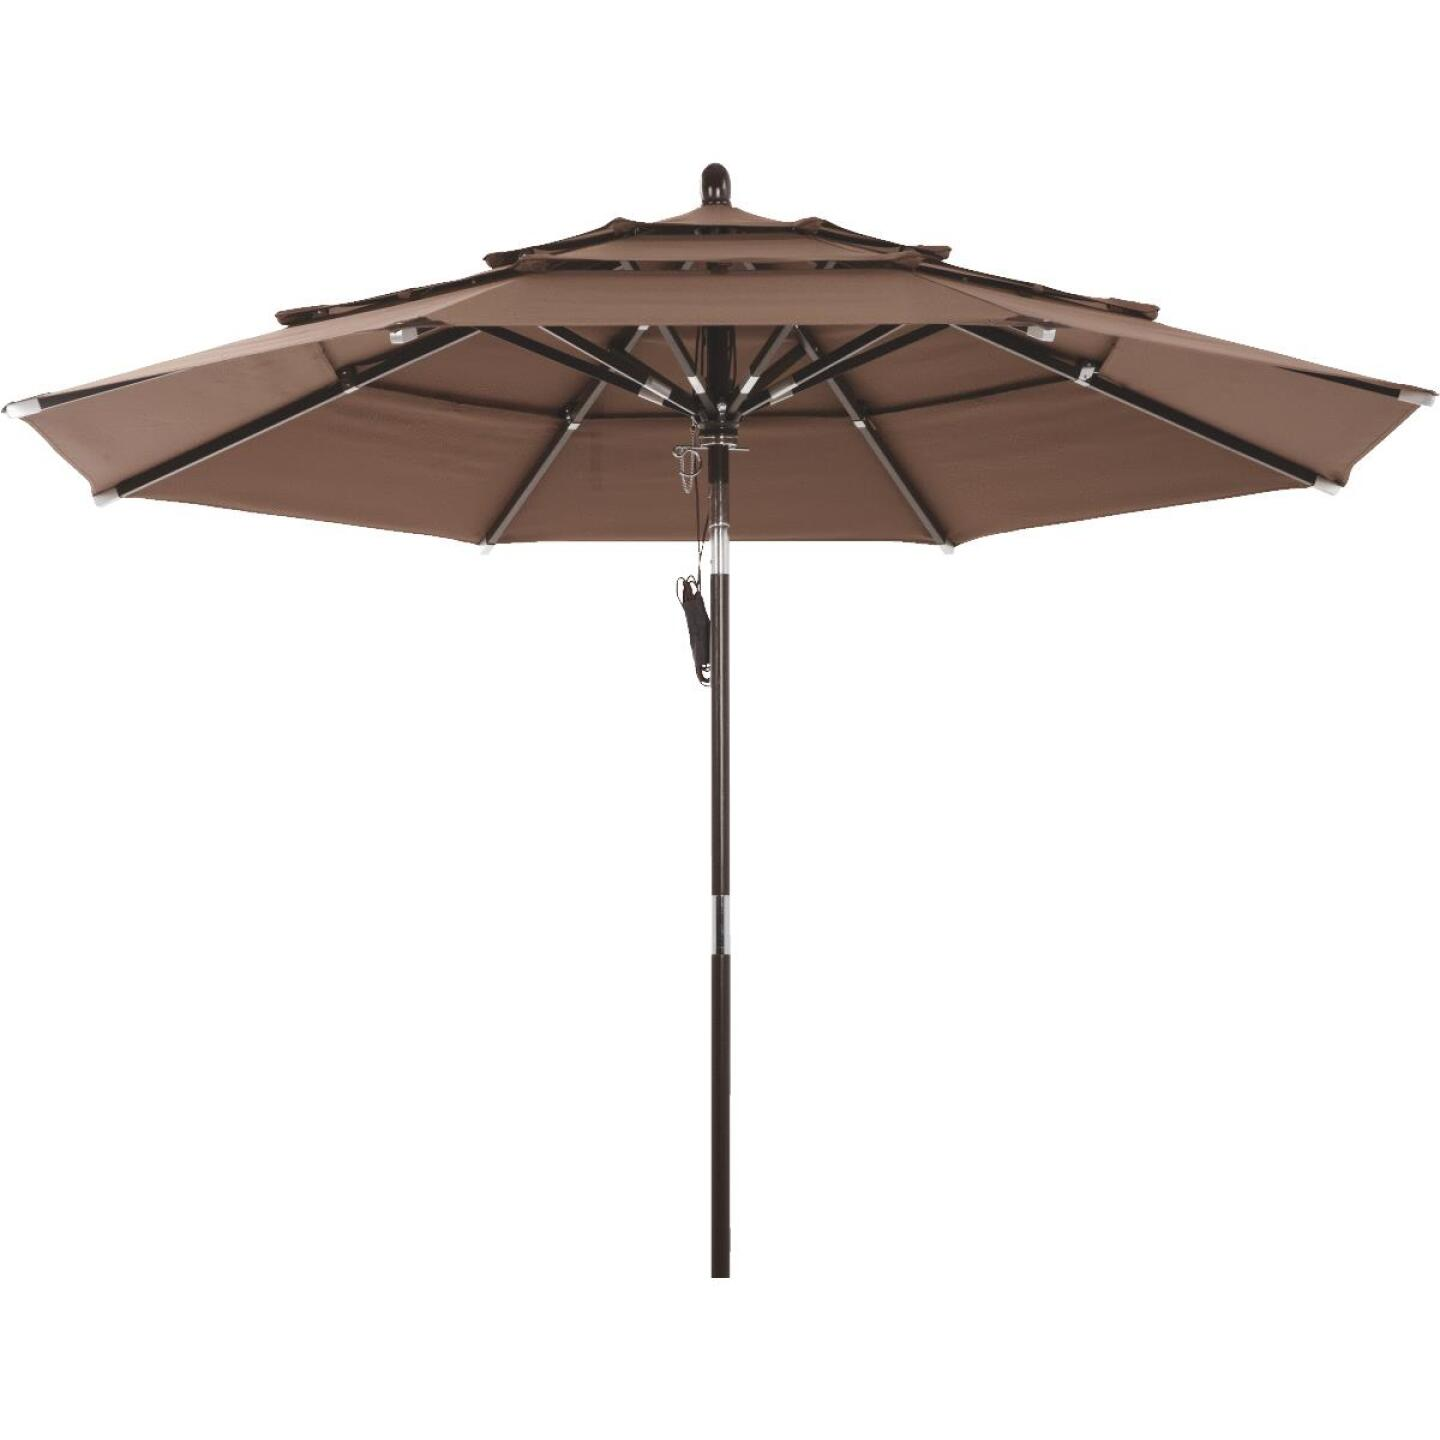 Outdoor Expressions 9 Ft. 3-Tier Tilt/Pulley Brown Patio Umbrella Image 4